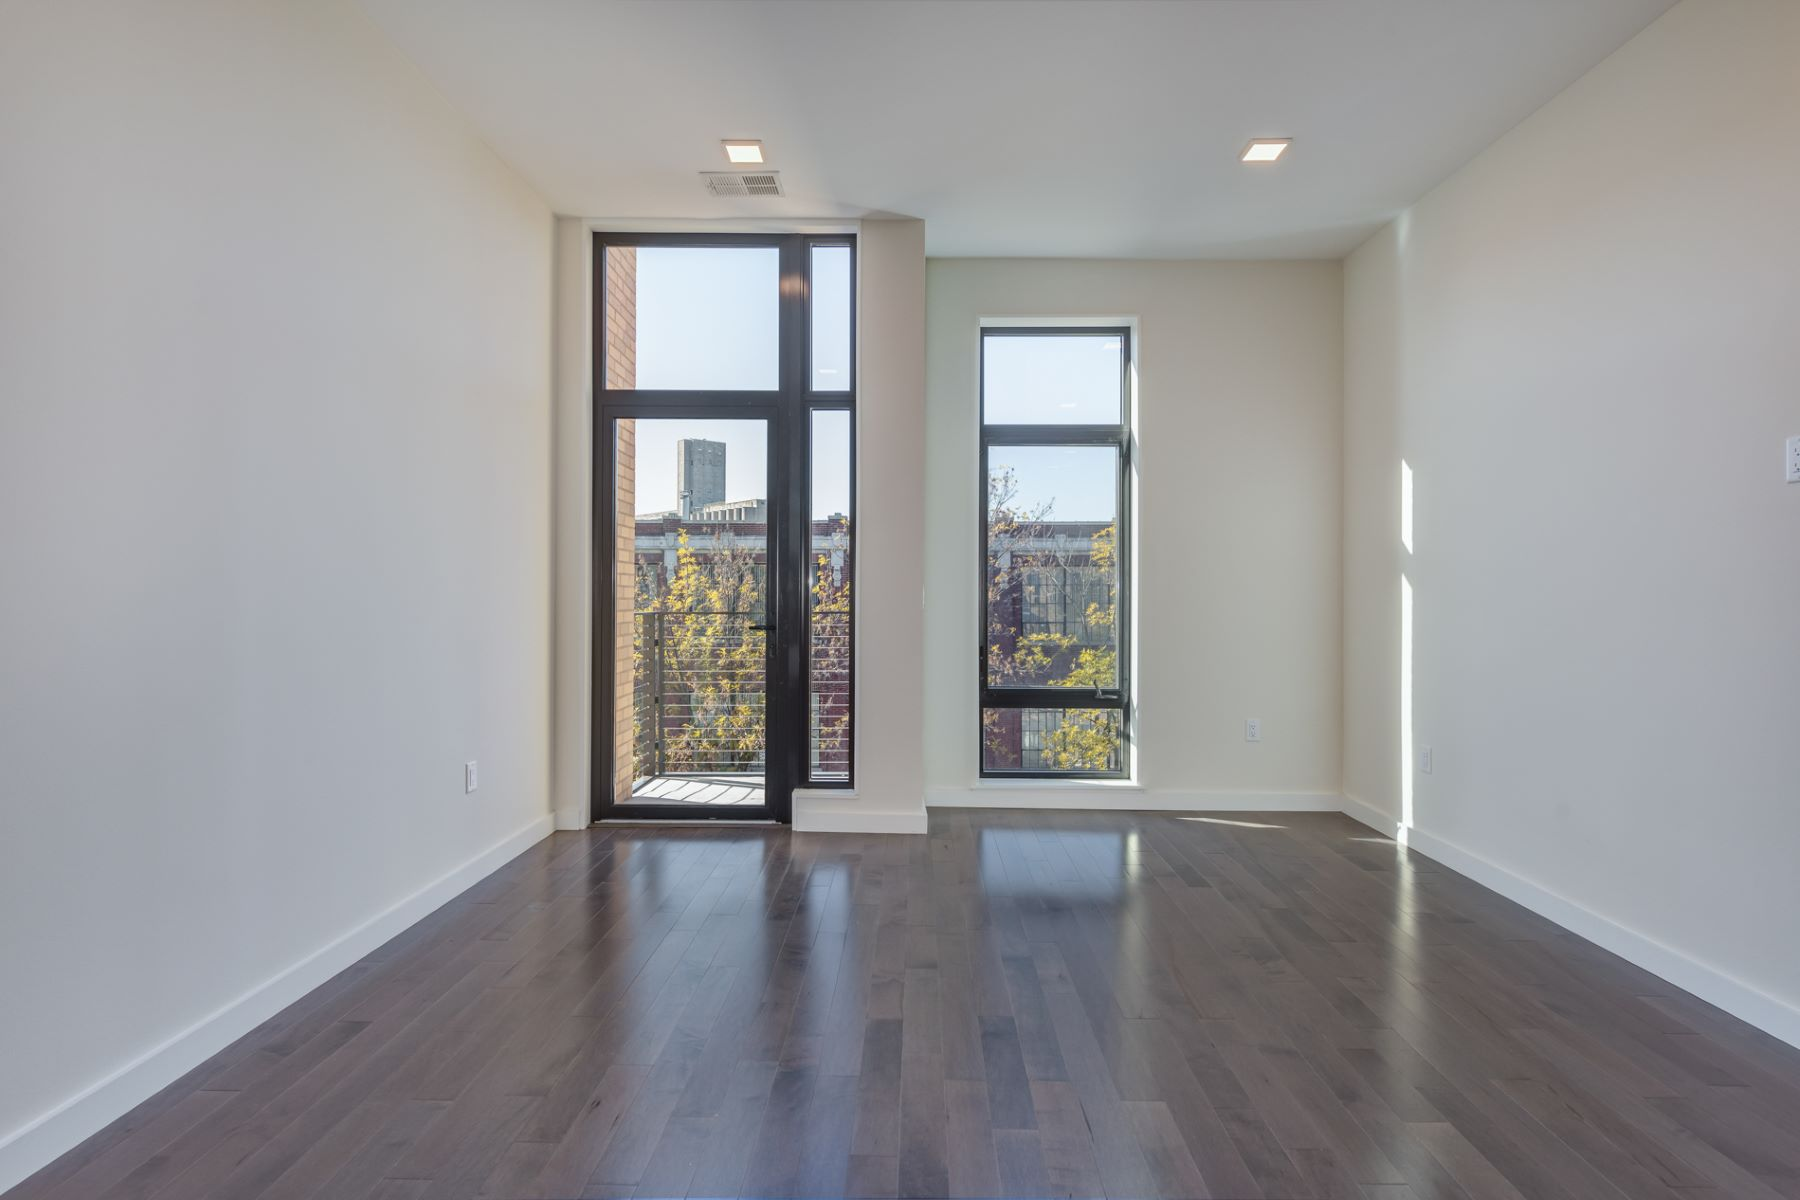 Additional photo for property listing at Laclede Ave 4101 Laclede Ave # 414 St. Louis, Missouri 63108 United States